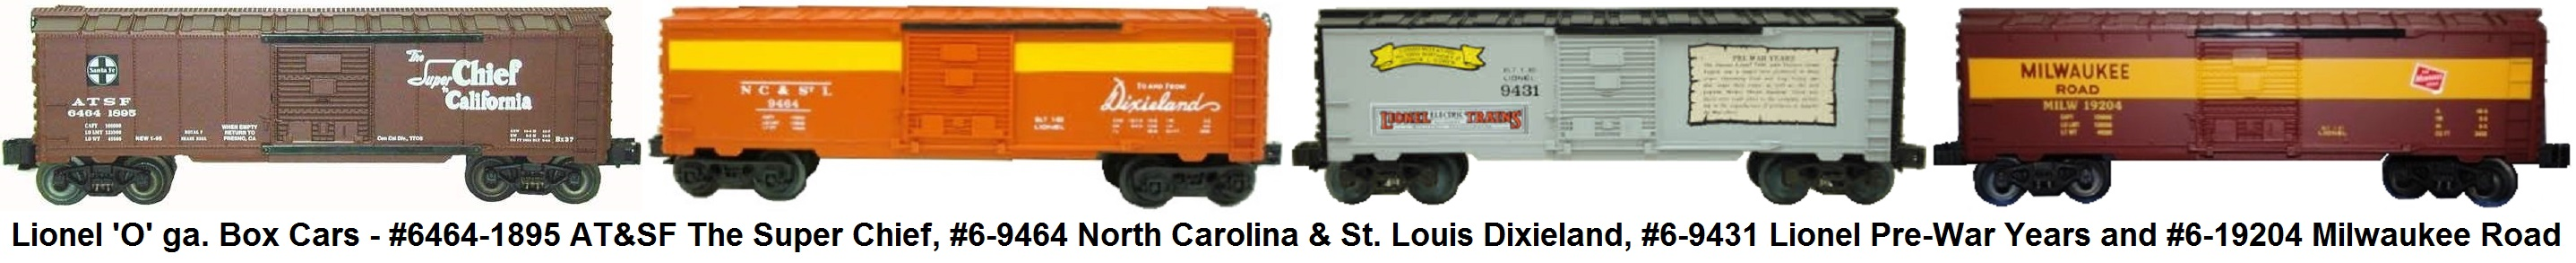 Lionel 'O' gauge #6464-1895 AT&SF The Super Chief, #6-9464 North Carolina & St. Louis Dixieland, #6-9431 Lionel Pre-war Years and #6-19204 Milwaukee Road Box Cars